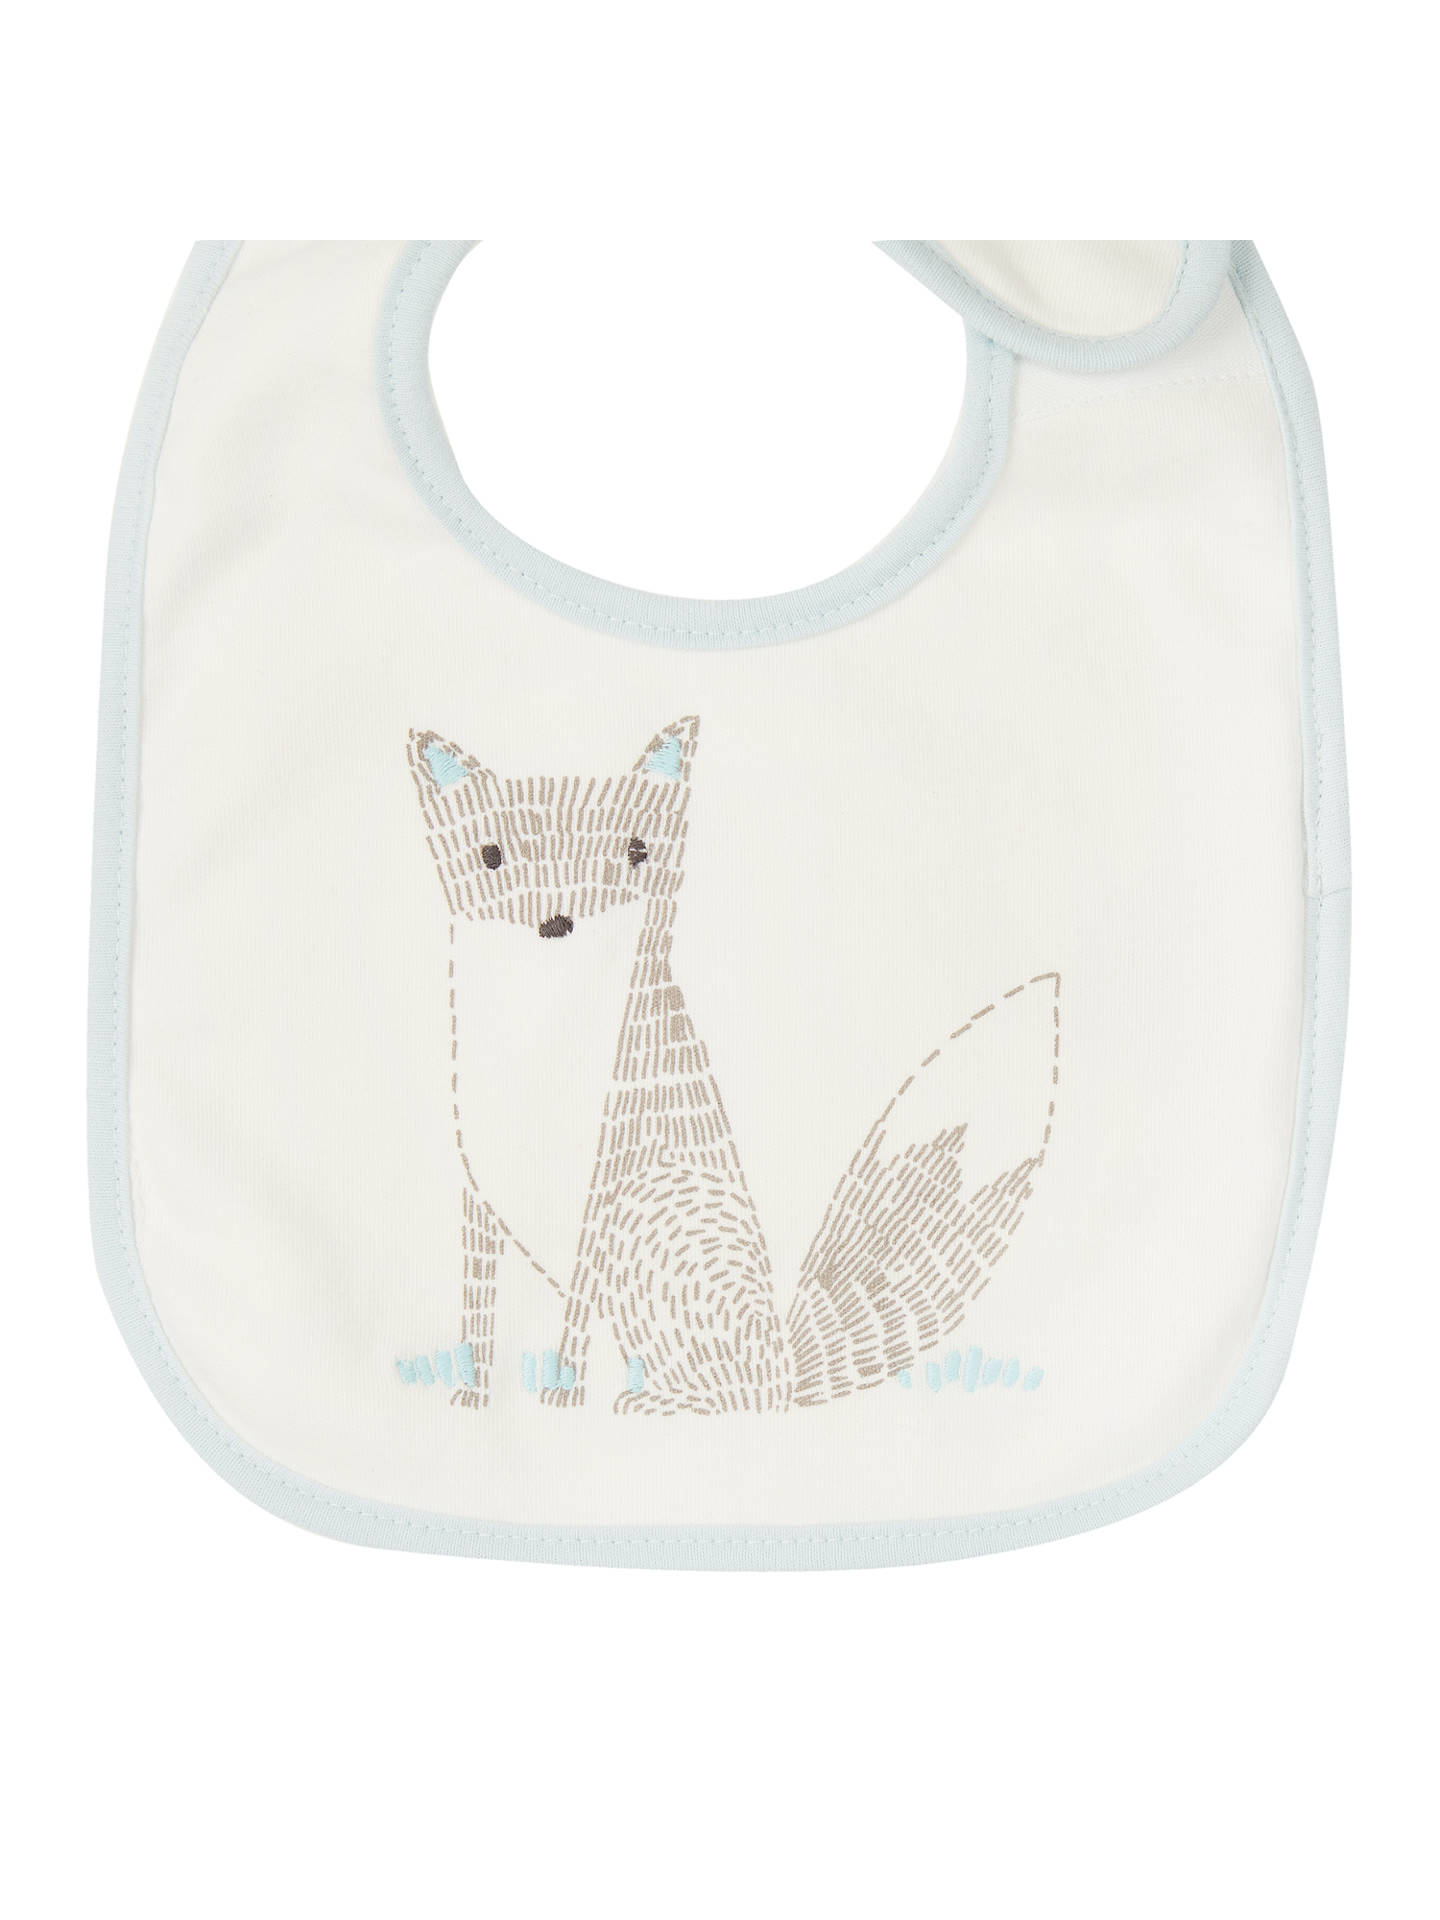 Buy John Lewis & Partners Baby Forest Friends Bib, Pack of 5 Online at johnlewis.com